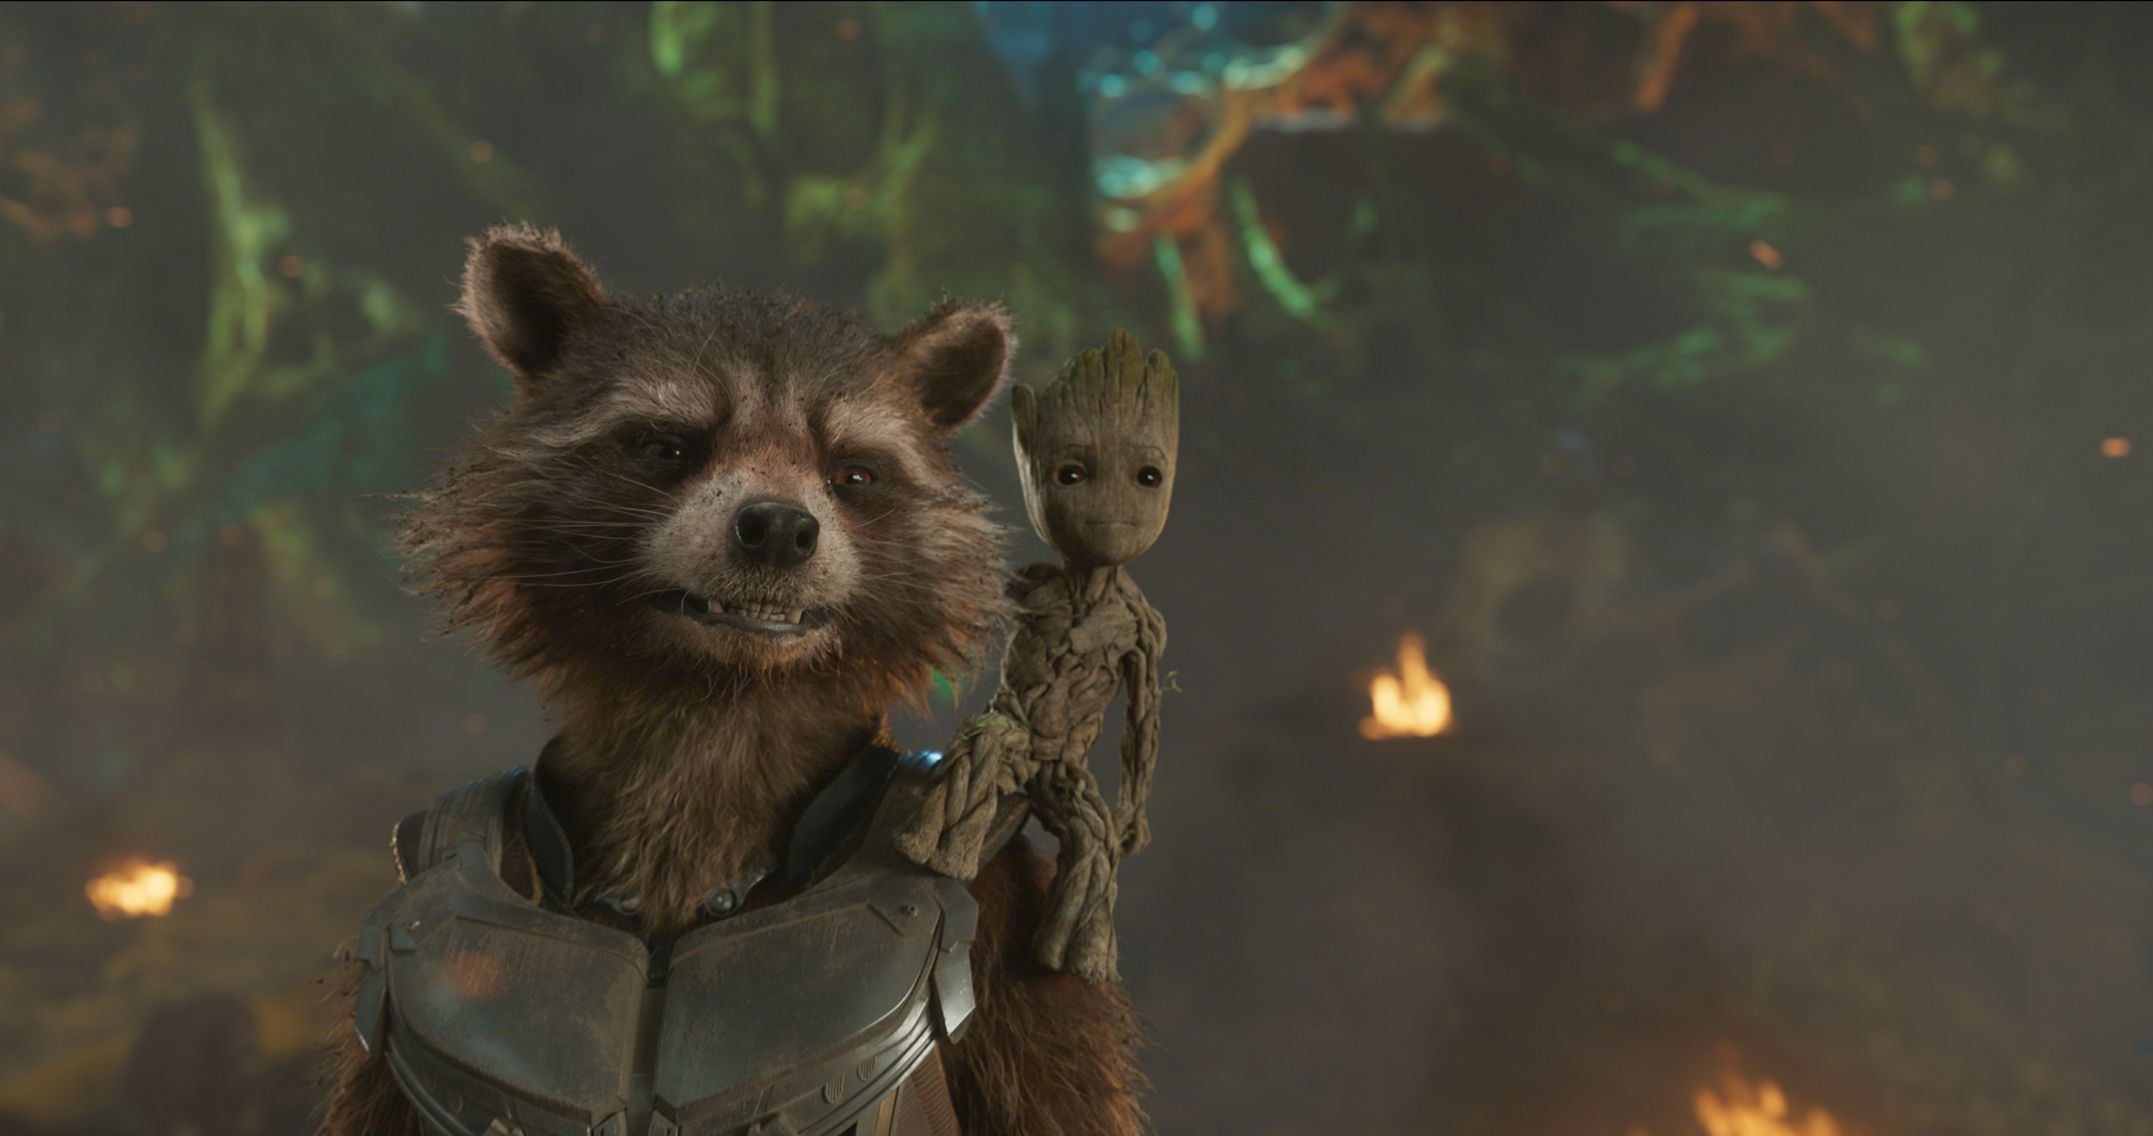 Could Rocket's repair tool save Tony Stark from a certain death in Avengers: Endgame?